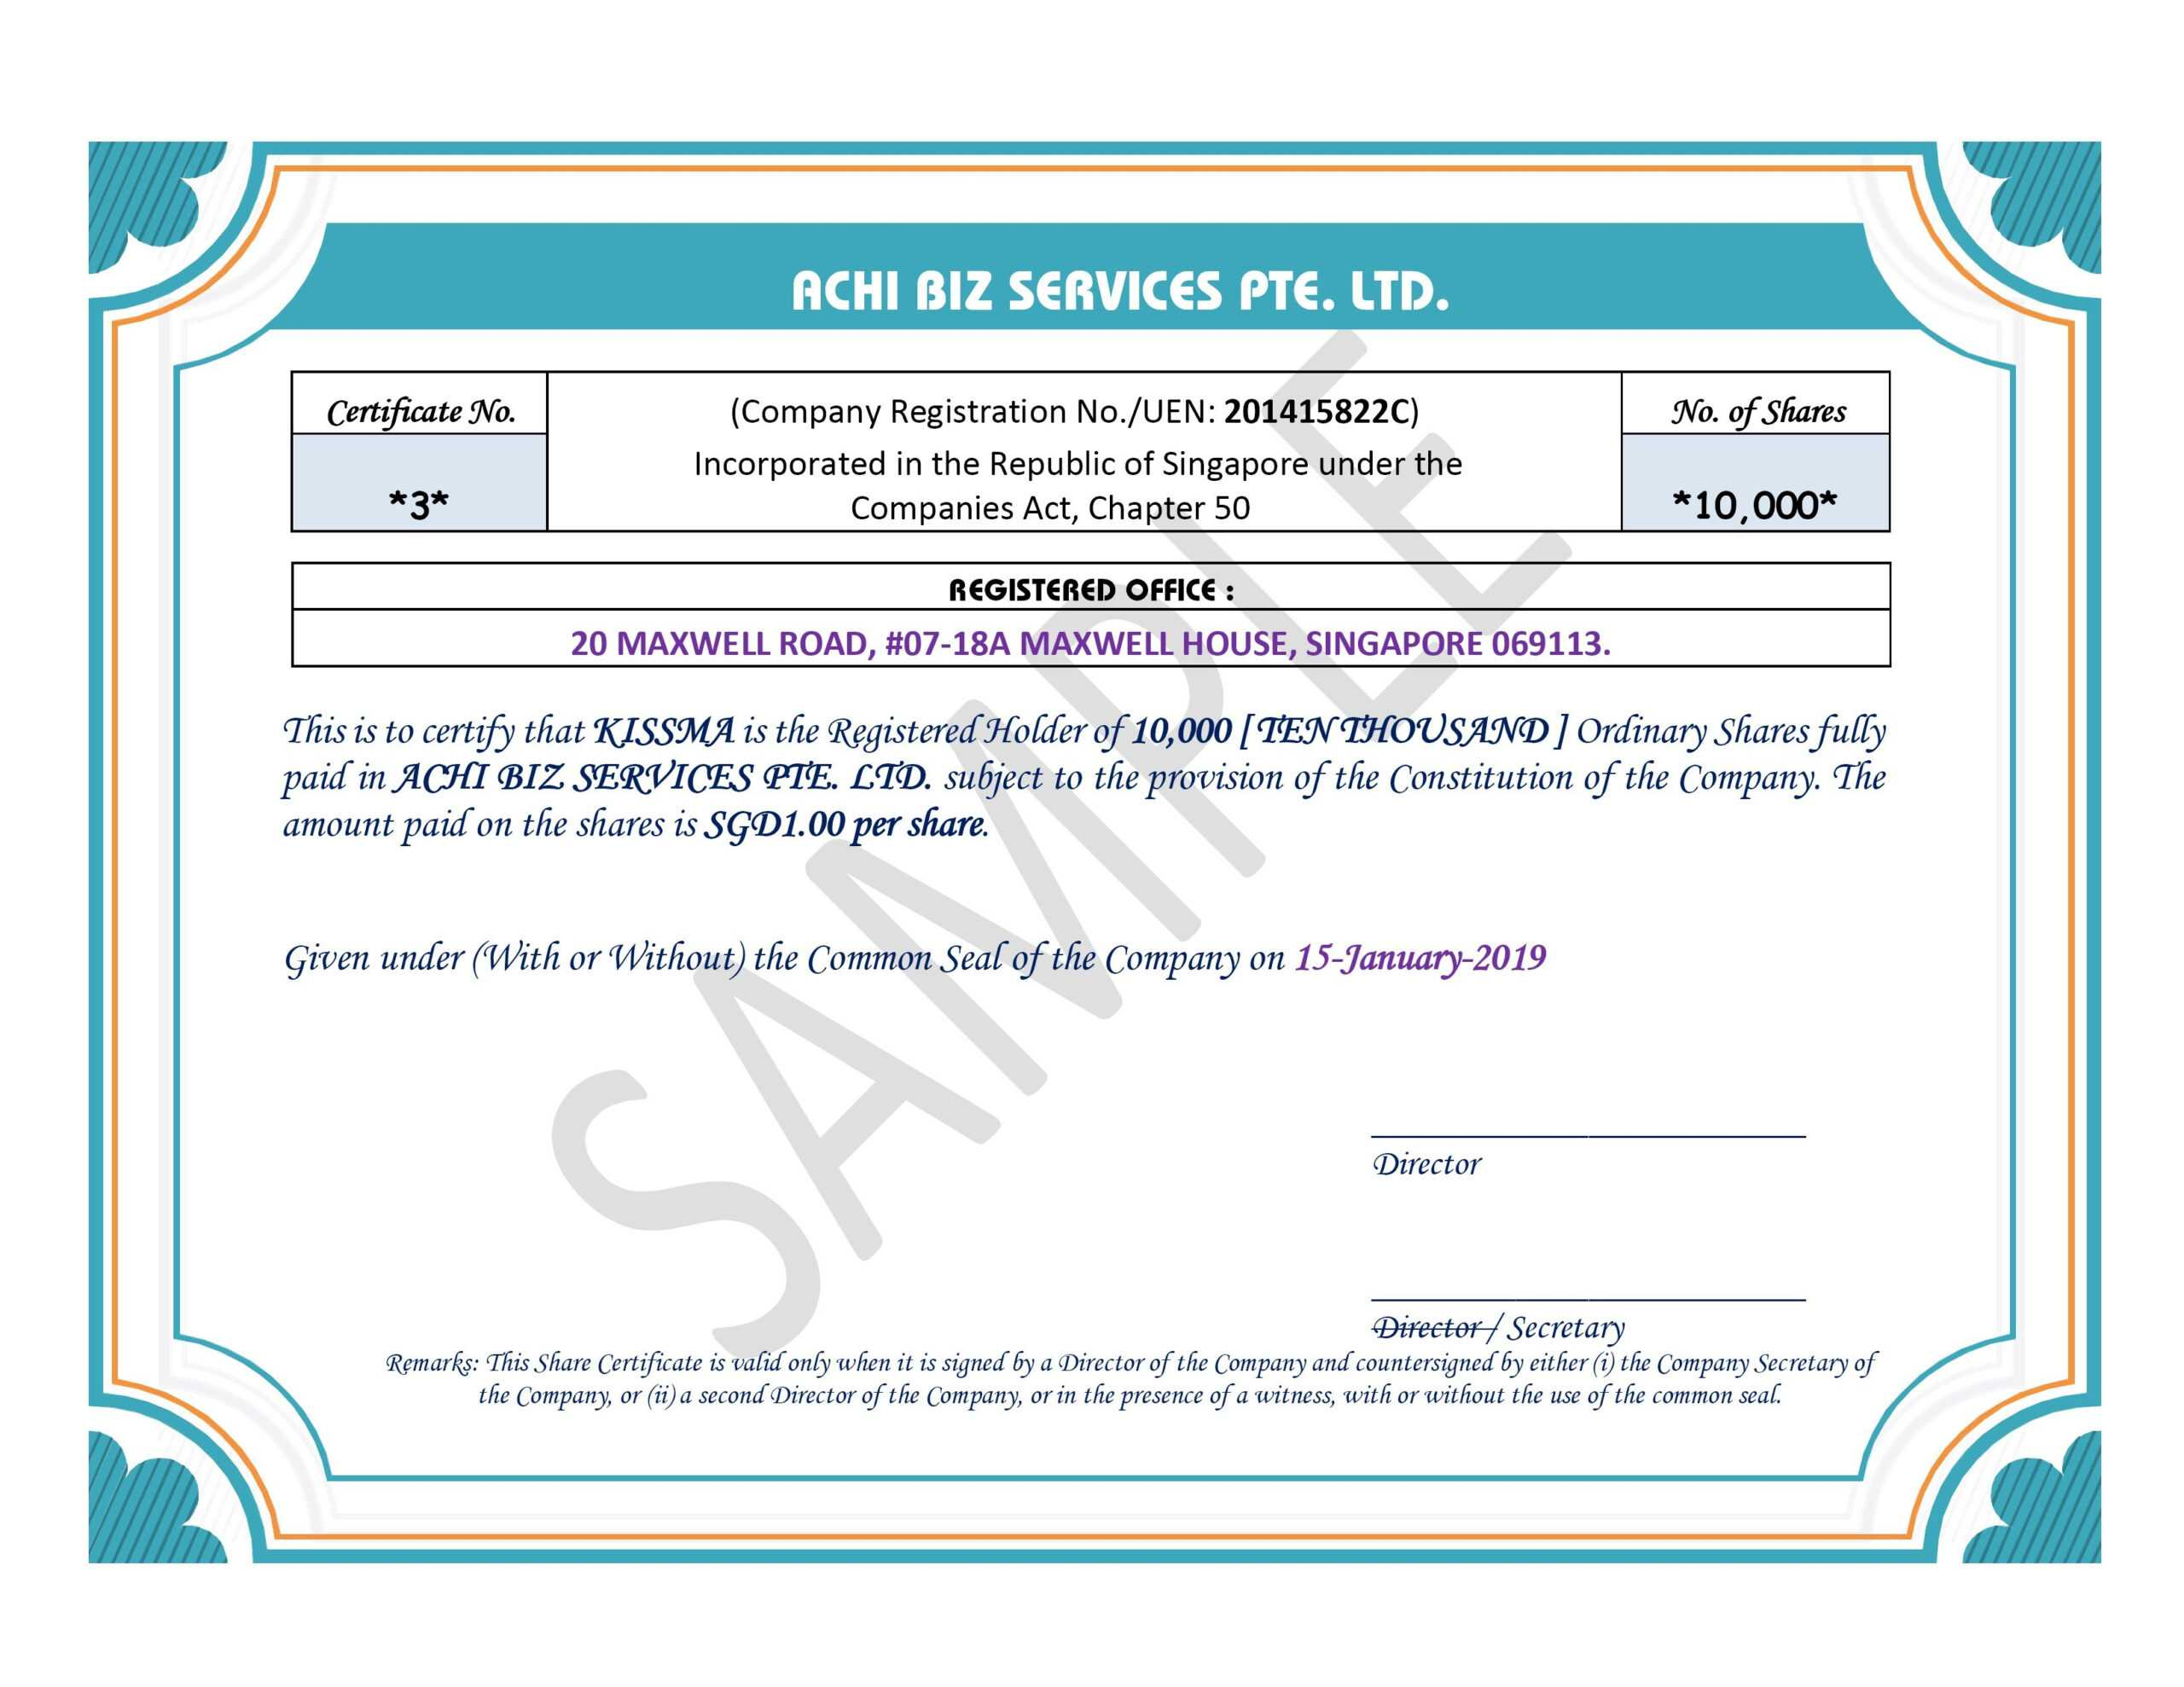 Share Certificate In Singapore ~ Achibiz Within Share Certificate Template Companies House